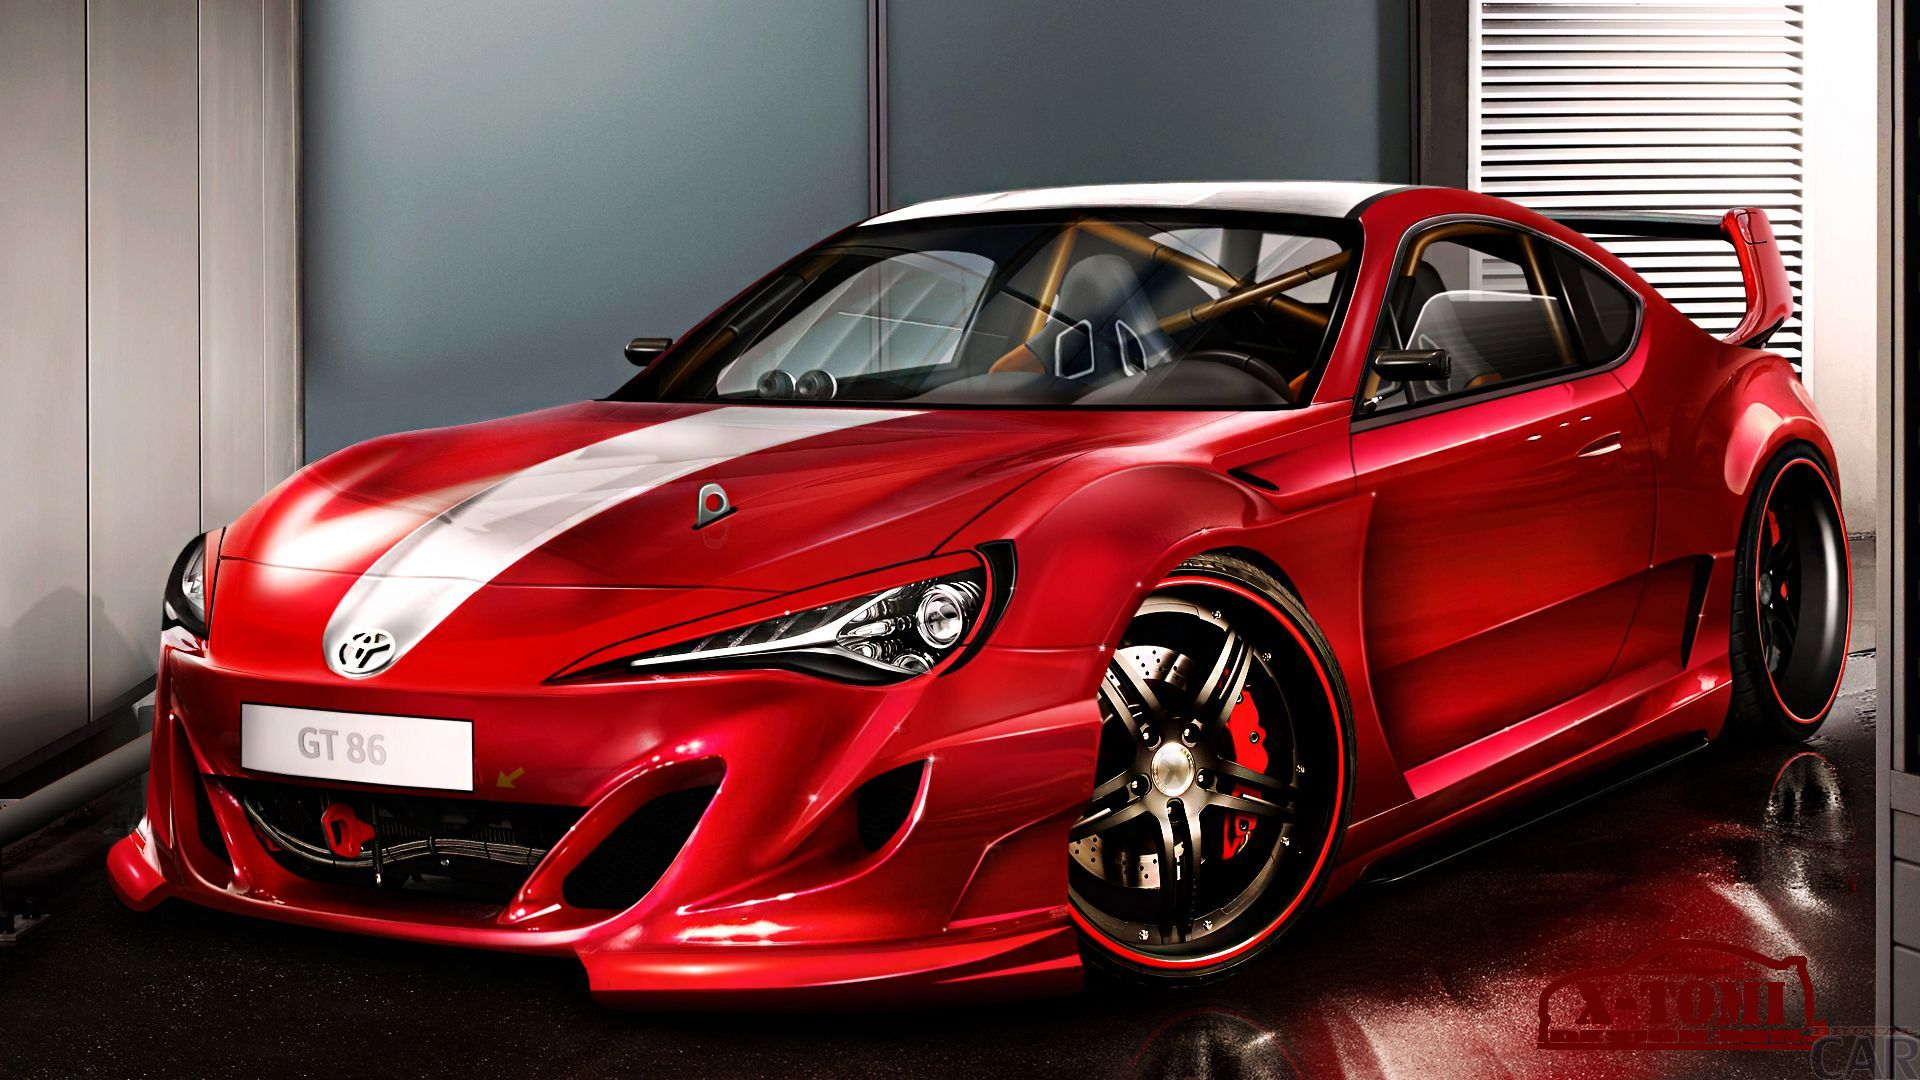 Toyota cars, photo with a brutal and tough handsome gt 86